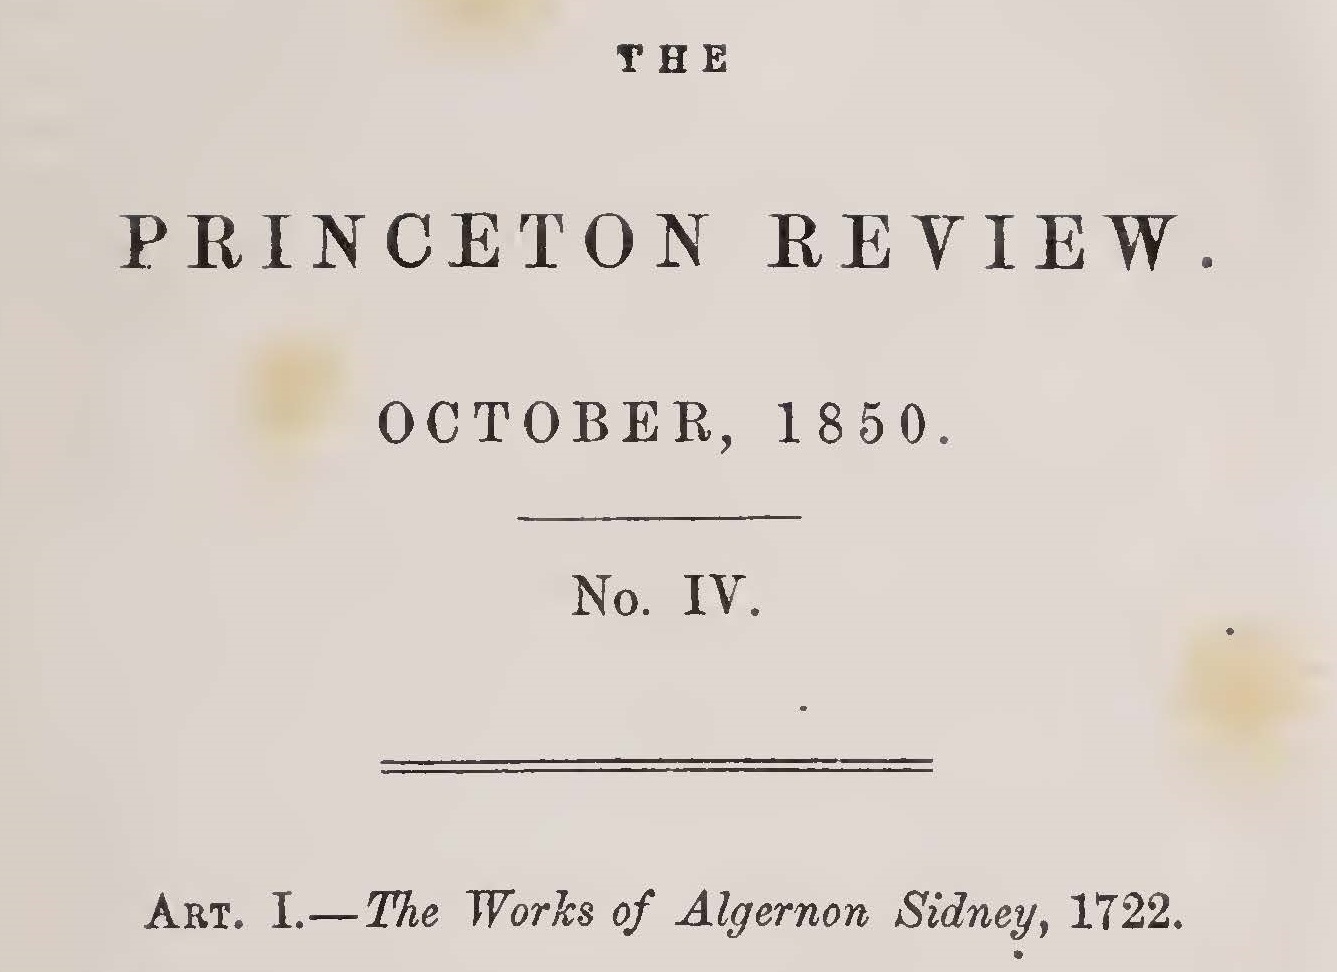 Plumer, William Swan, The Works of Algernon Sidney Title Page.jpg